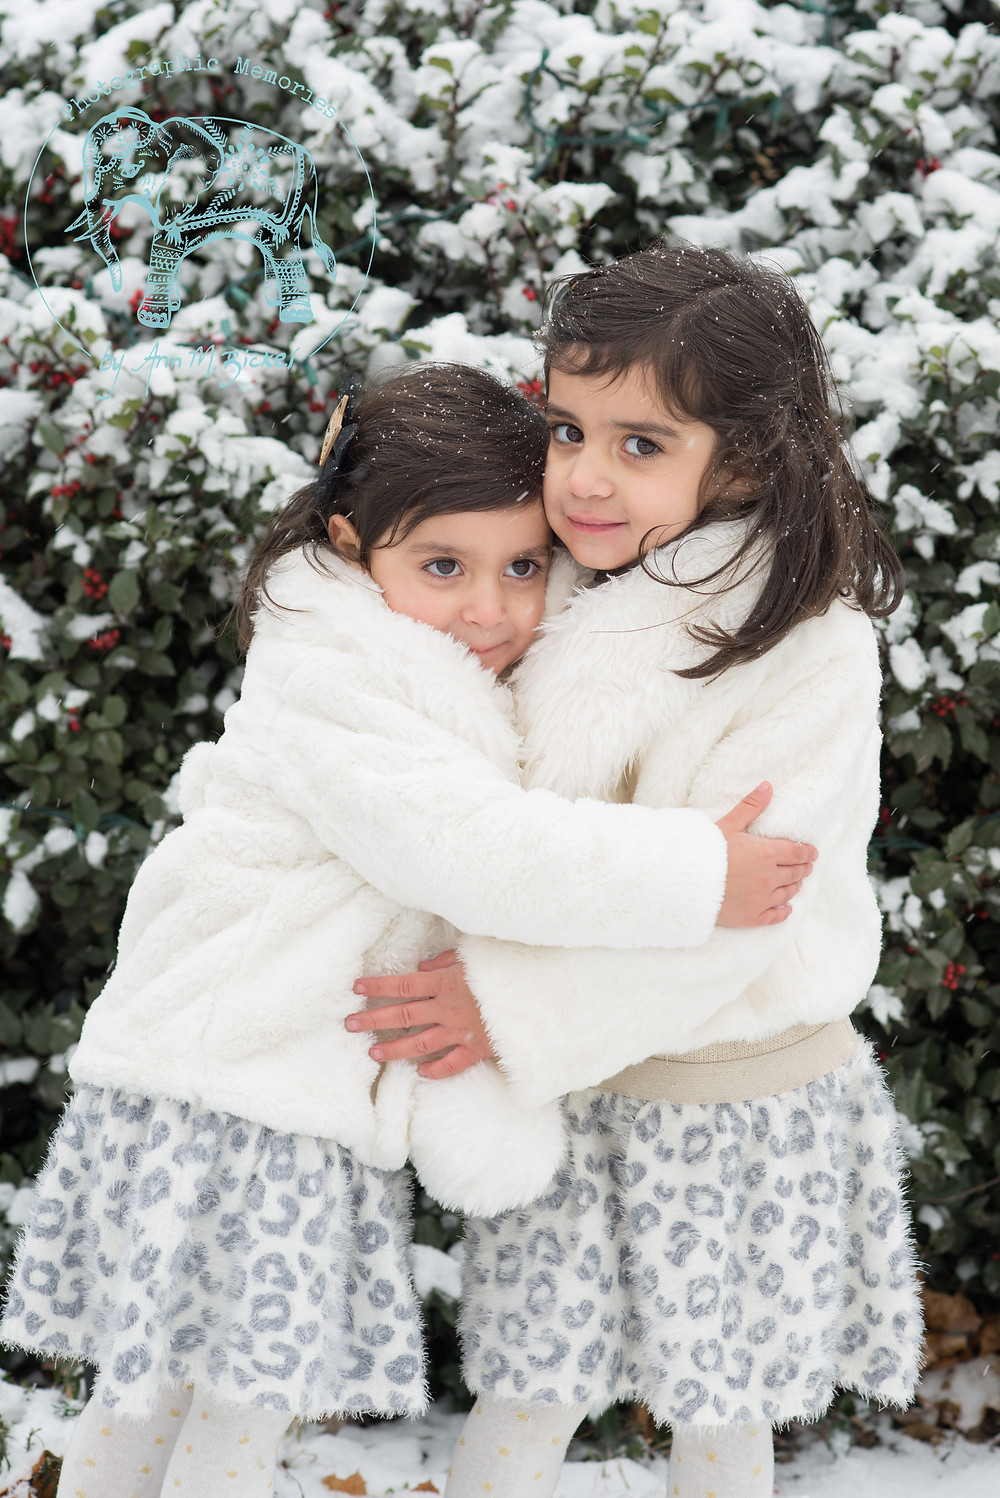 Flower Girls in Winter Wraps - Image Courtesy of Photographic Memories